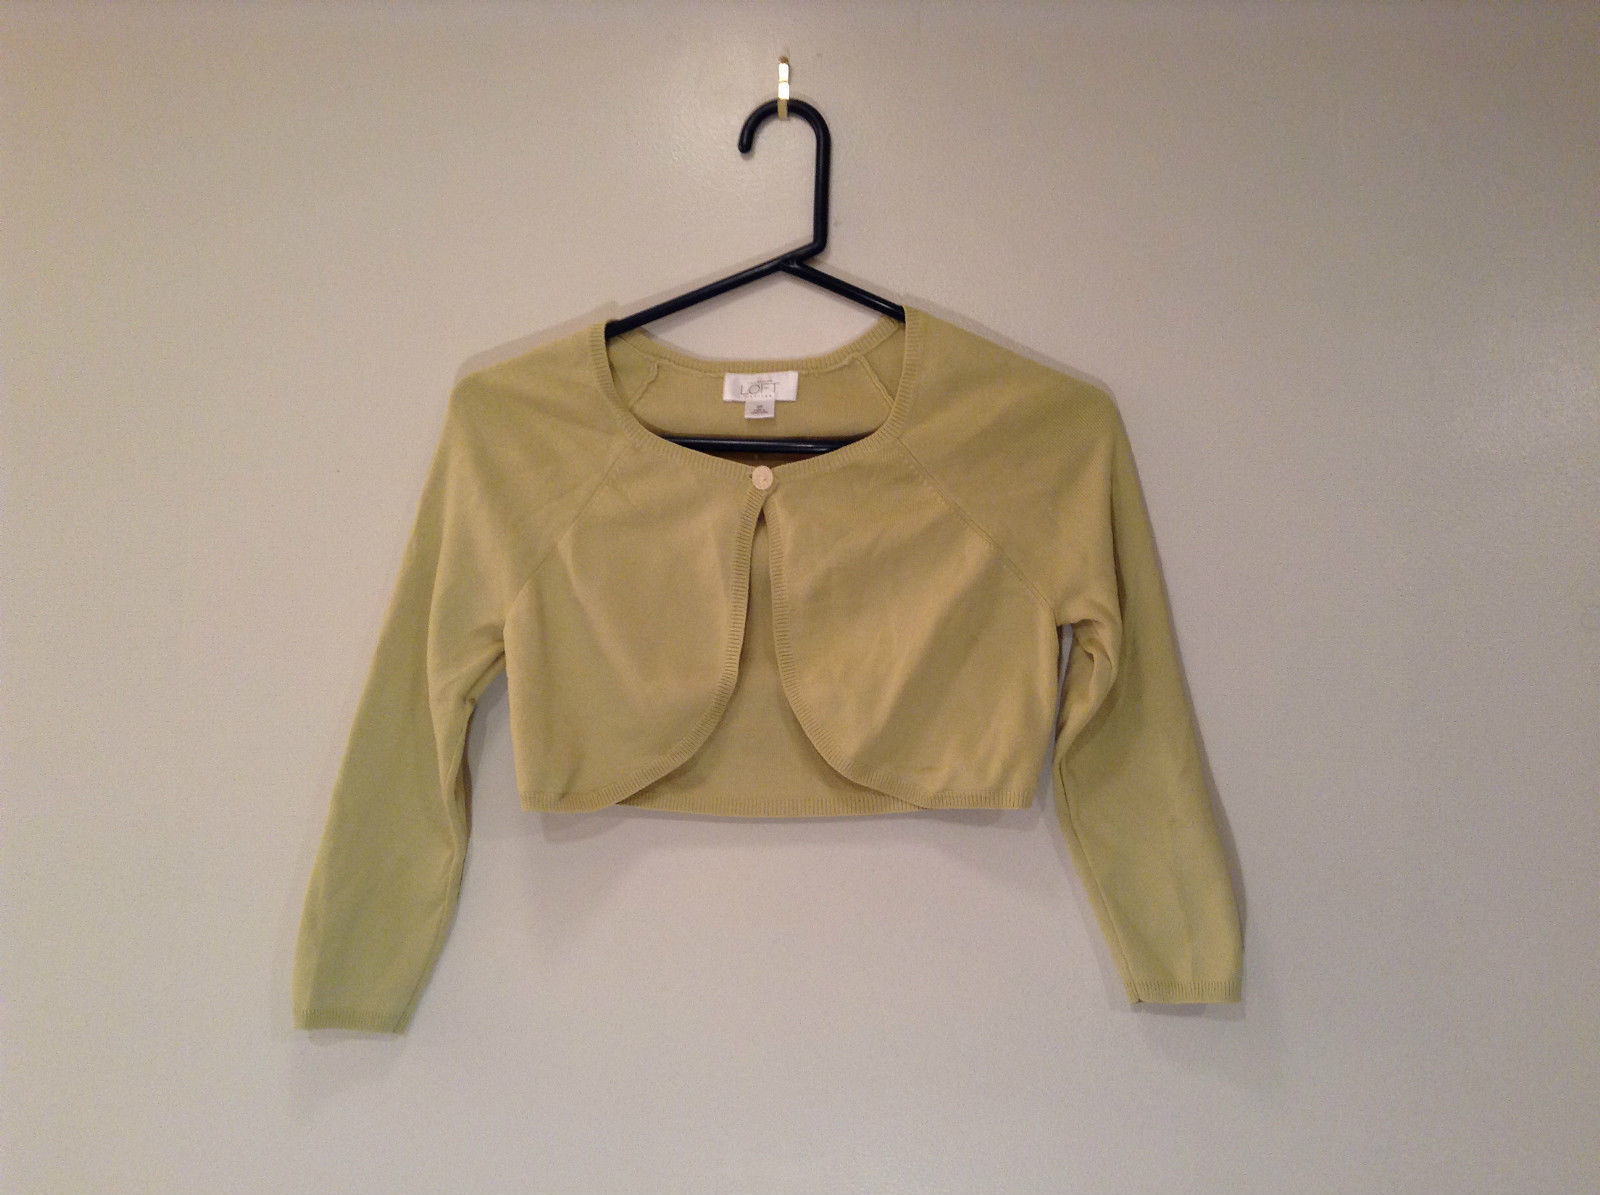 Ann Taylor LOFT Petites Size SP Lemon Green Sweater Bolero Top